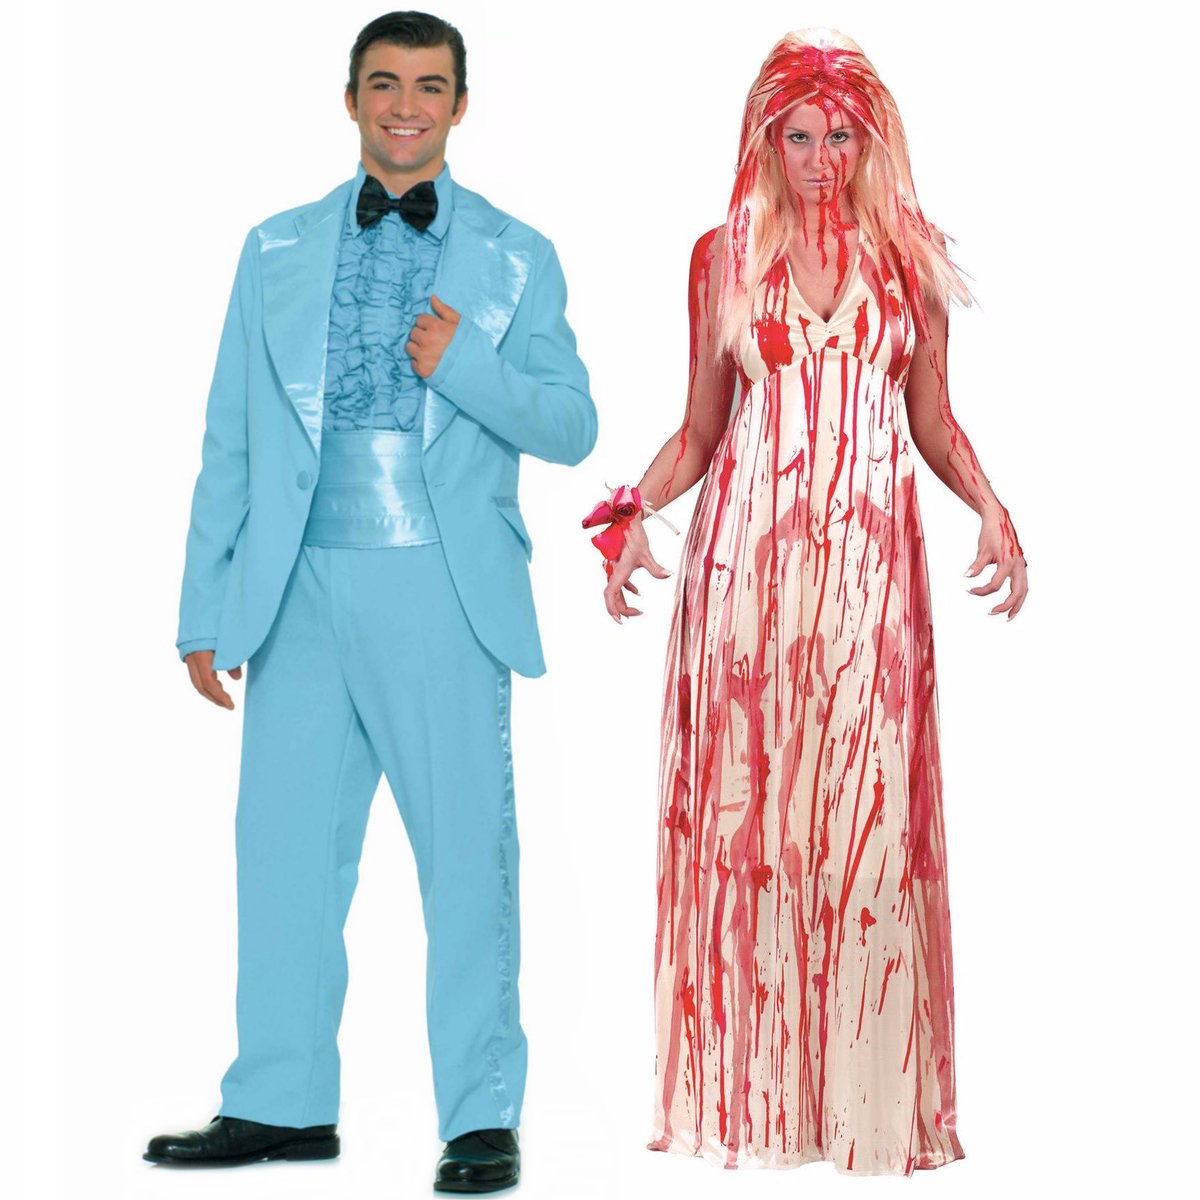 Asylum Zone Costumes on Twitter  More couples costume ideas! Theyu0027re all gonna laugh at you!!! #carrie #stephenking #scary #horror #scarymovie #halloween ...  sc 1 st  Twitter & Asylum Zone Costumes on Twitter: